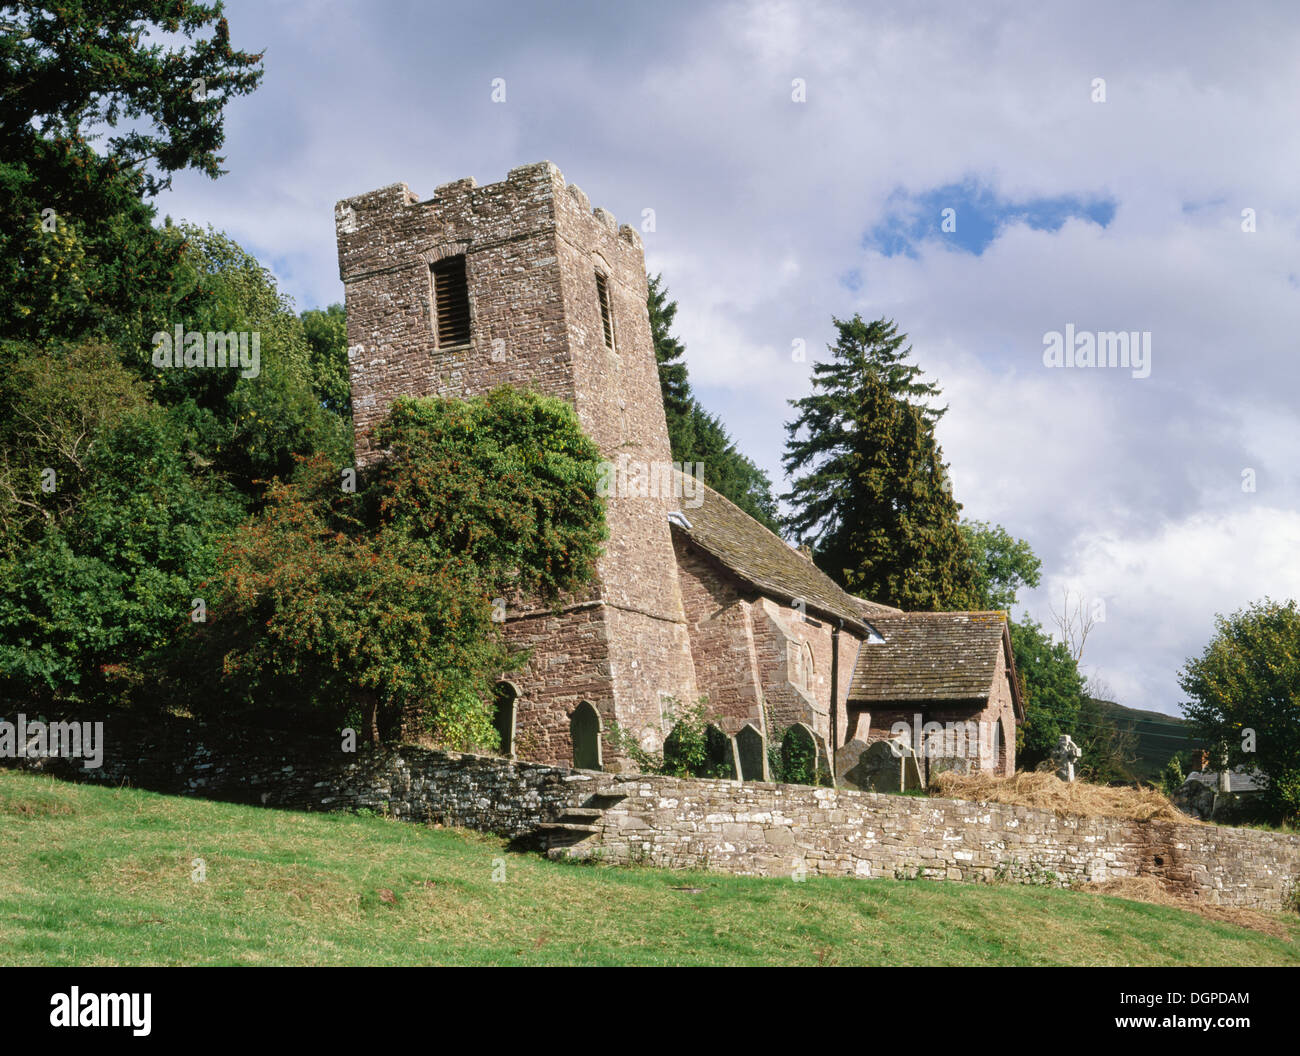 Tower and chancel of Cwmyoy Medieval church, Monmouthshire, have been twisted in opposite directions by slippage - Stock Image